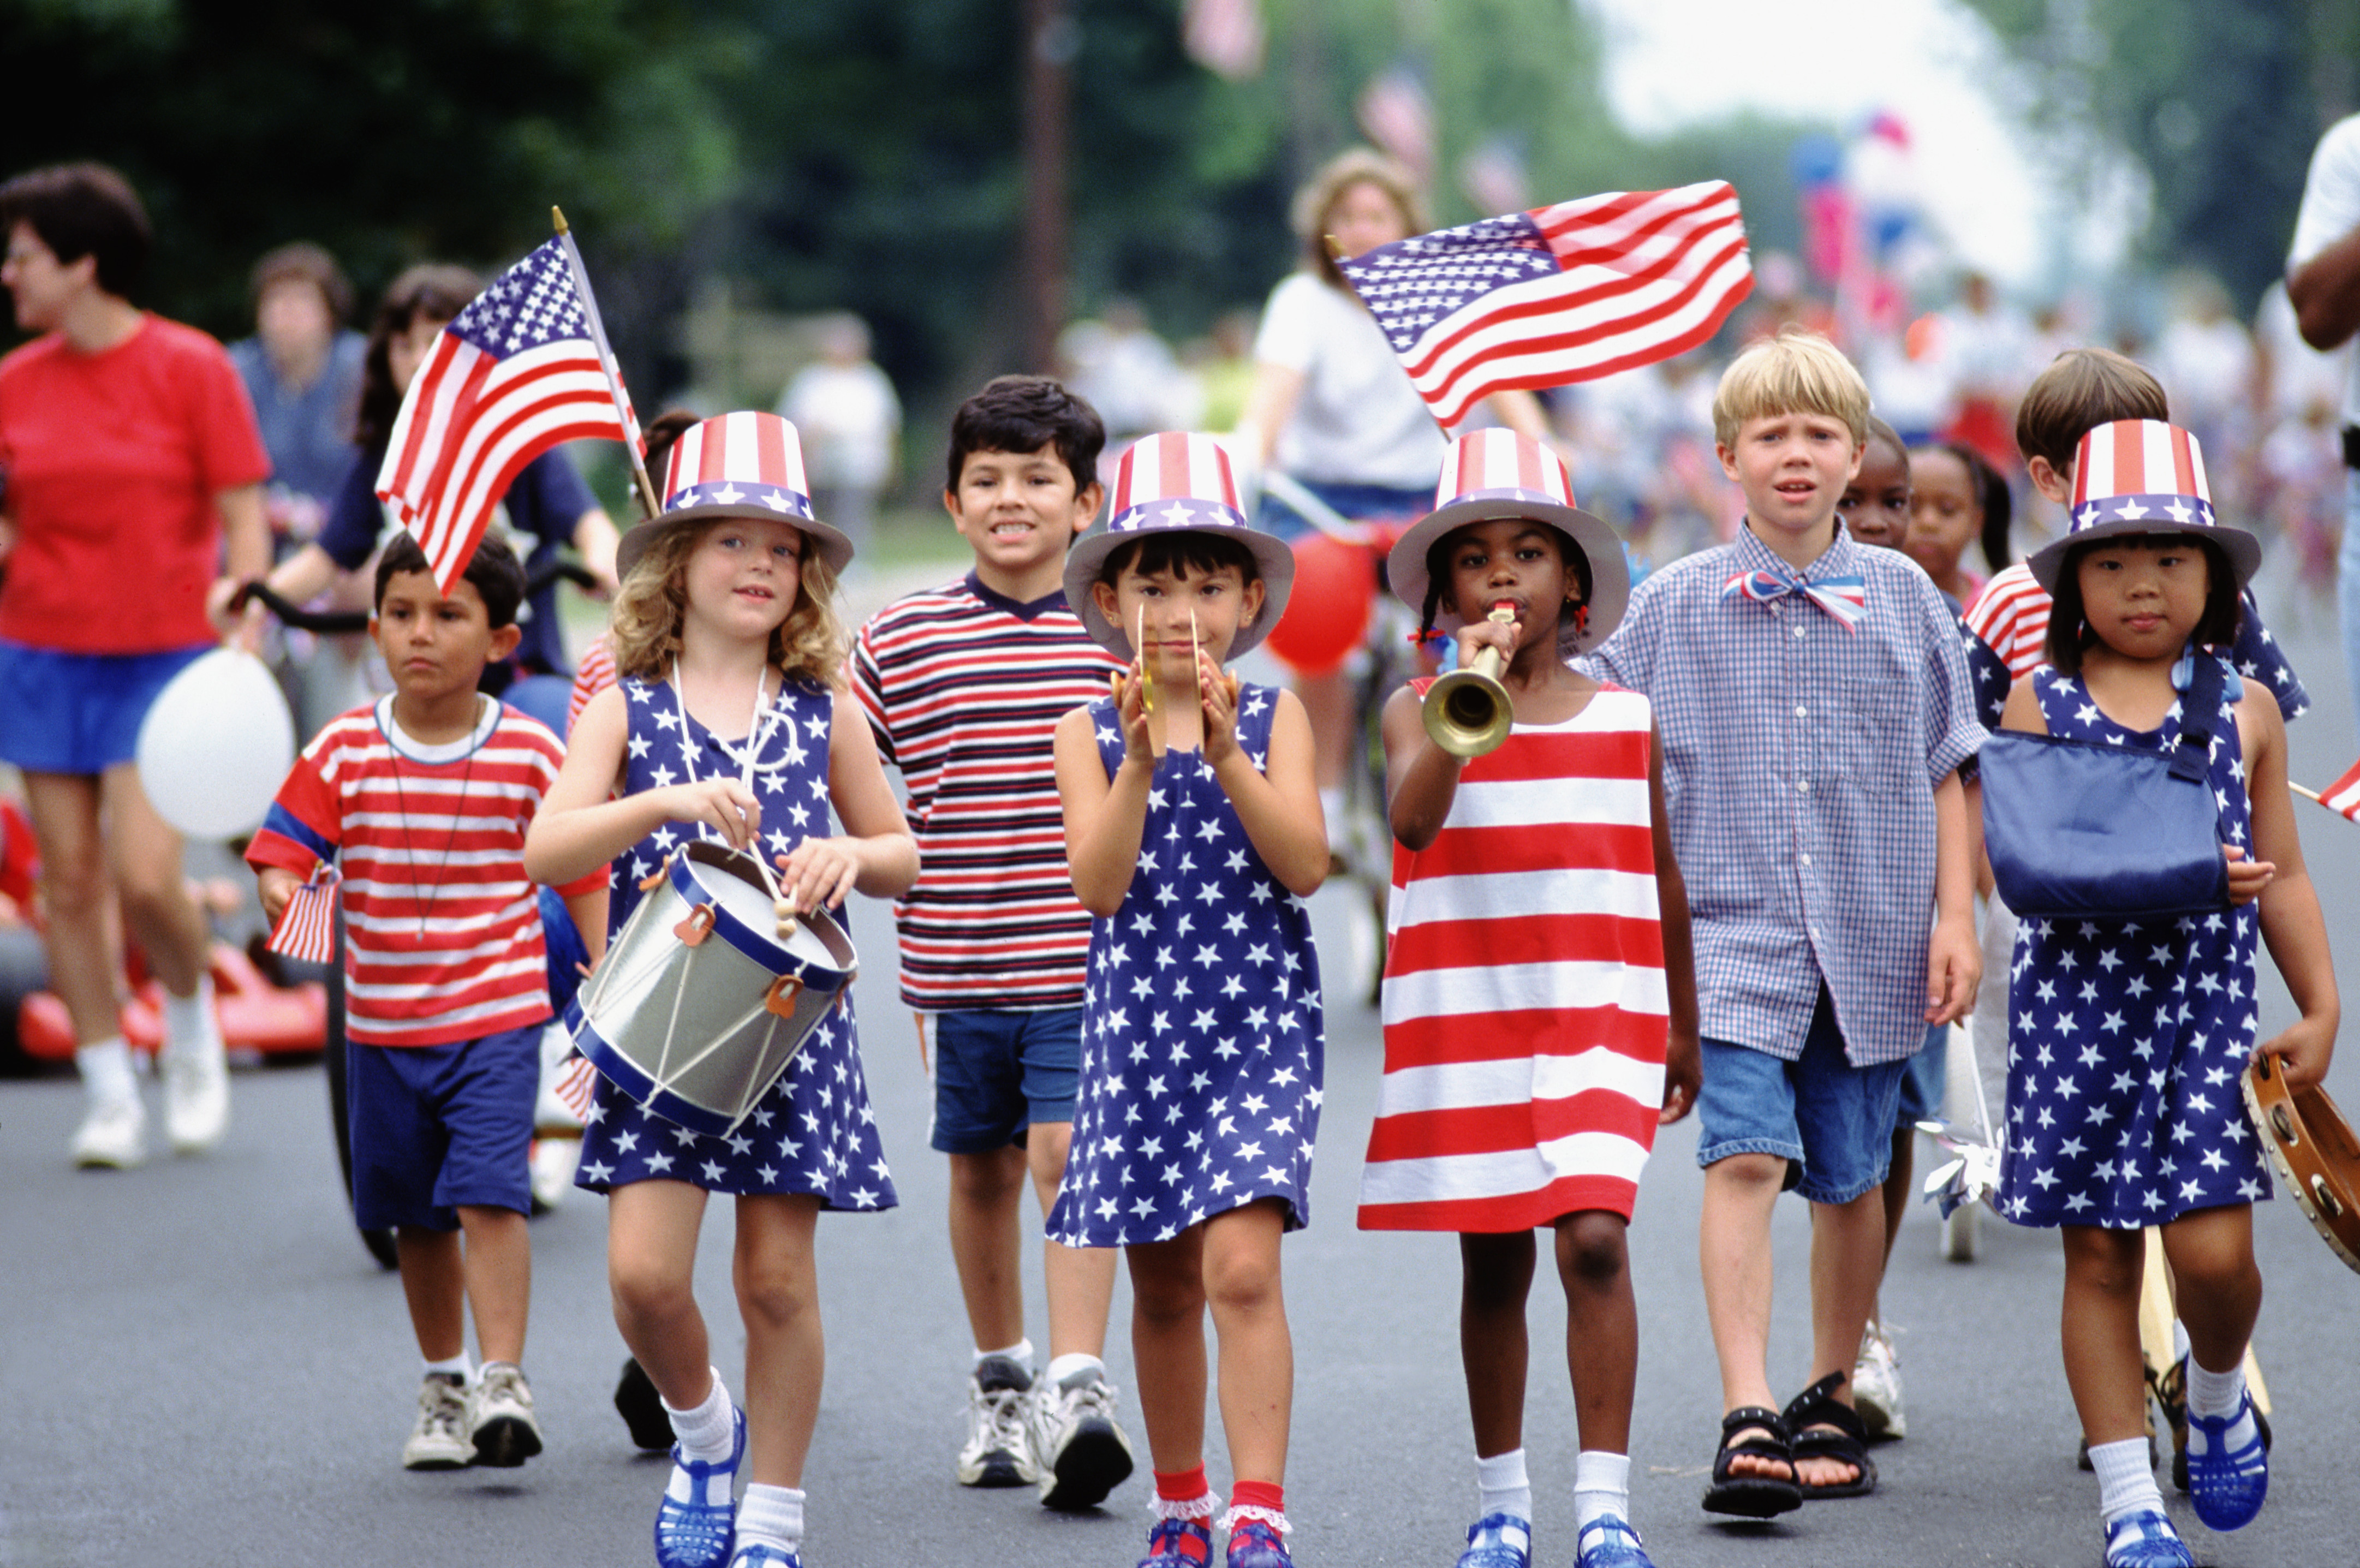 Children dressed in American Flag Clothing Marching in an Independence Day Parade